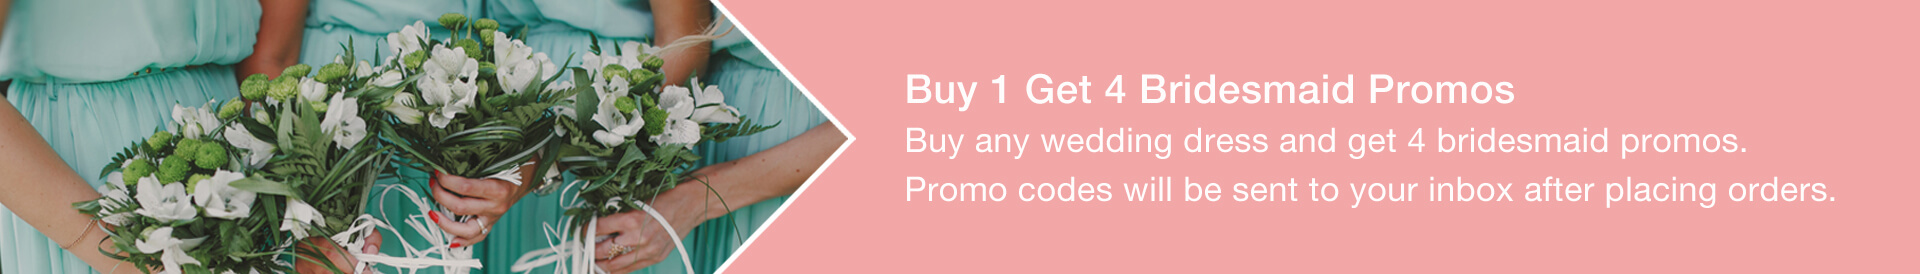 Buy 1 get 4 Bridesmaid promo